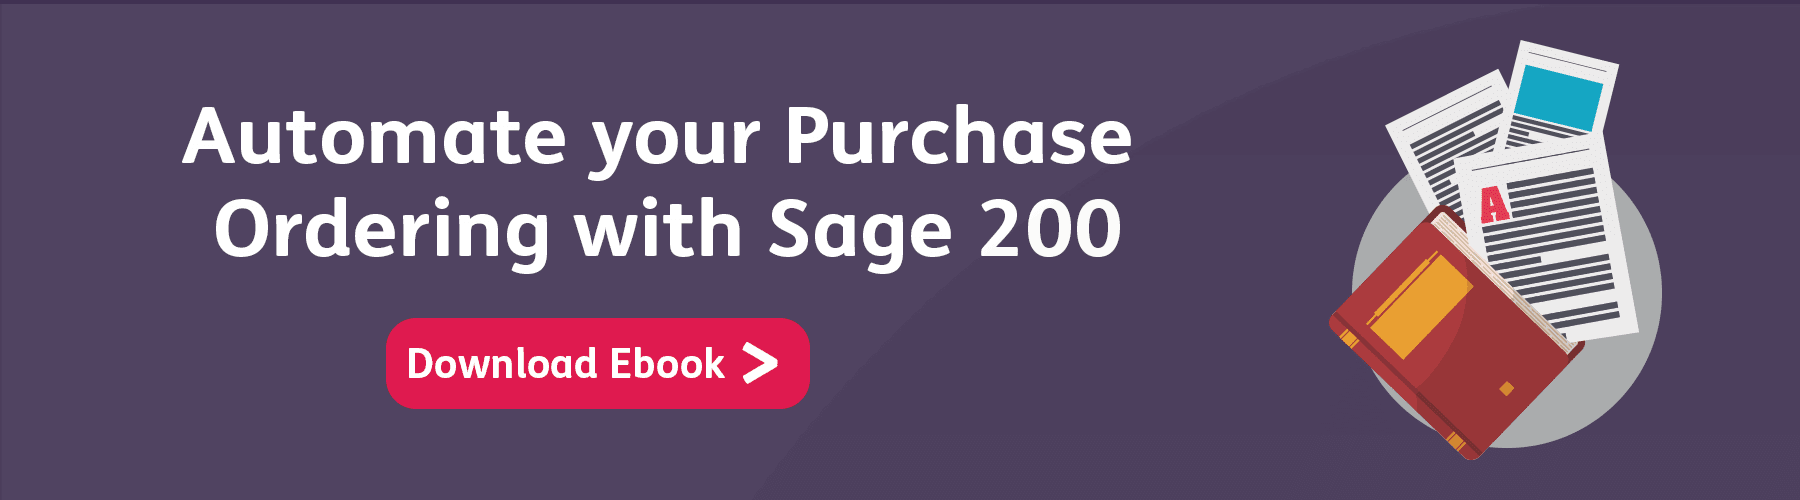 Stay in Control of Your Purchase Order Process with Sage 200 - Sage UK